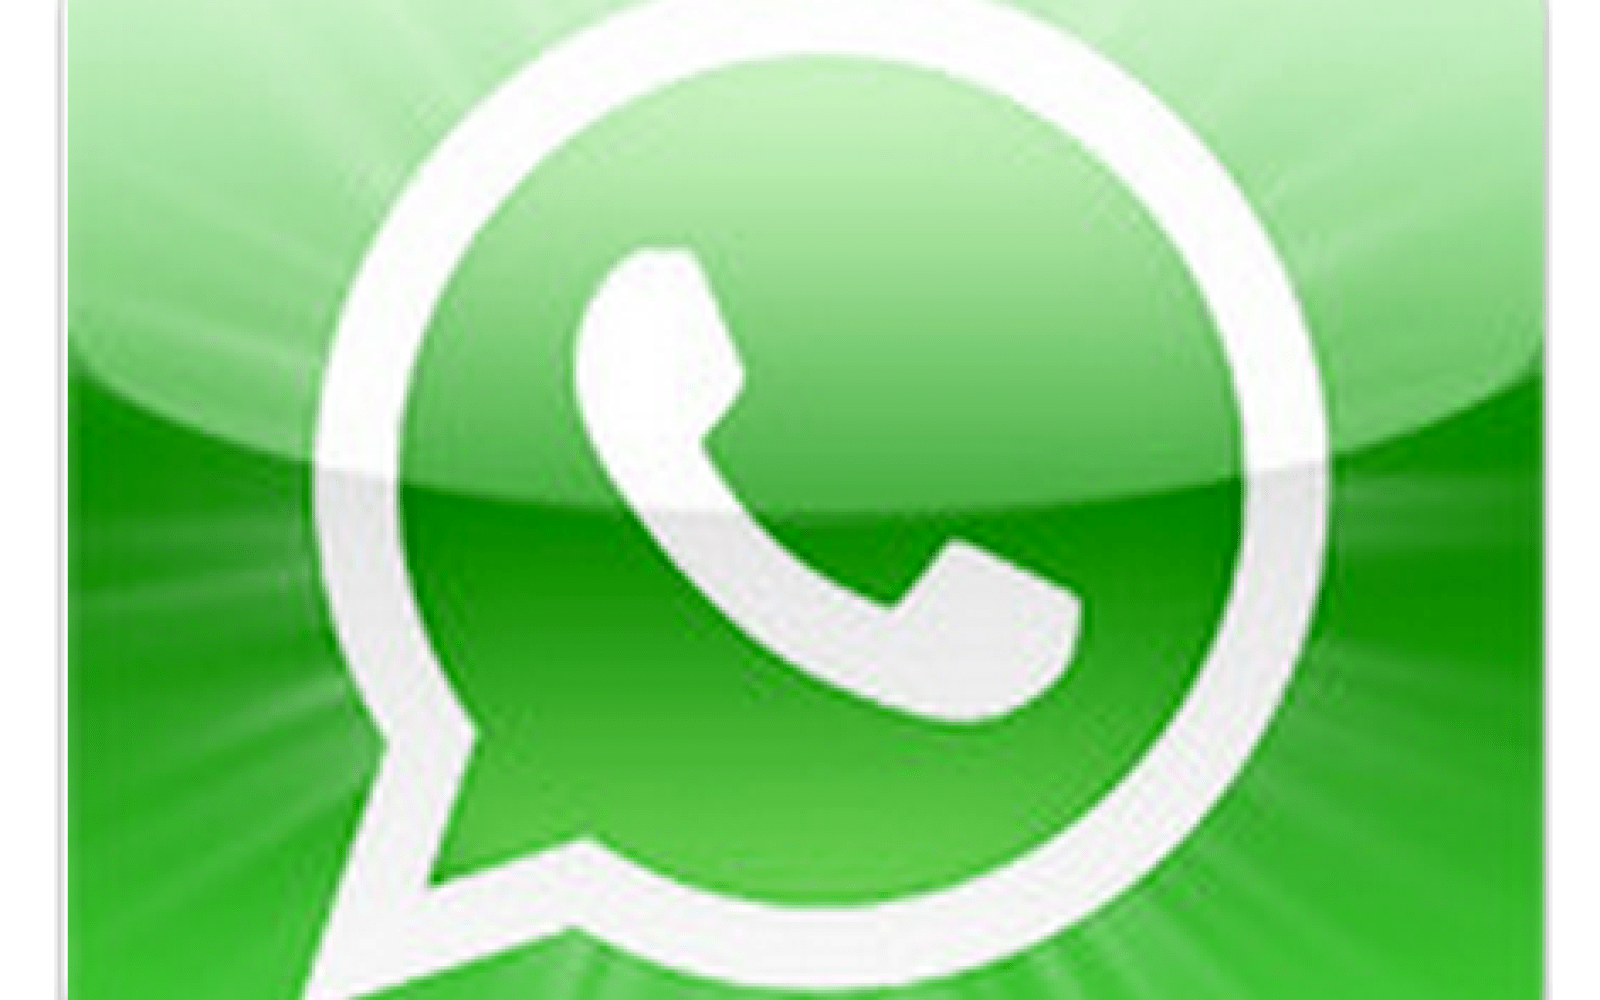 WhatsApp Messenger for iPhone gets iCloud chat backups, support for sending multiple photos, & URL schemes